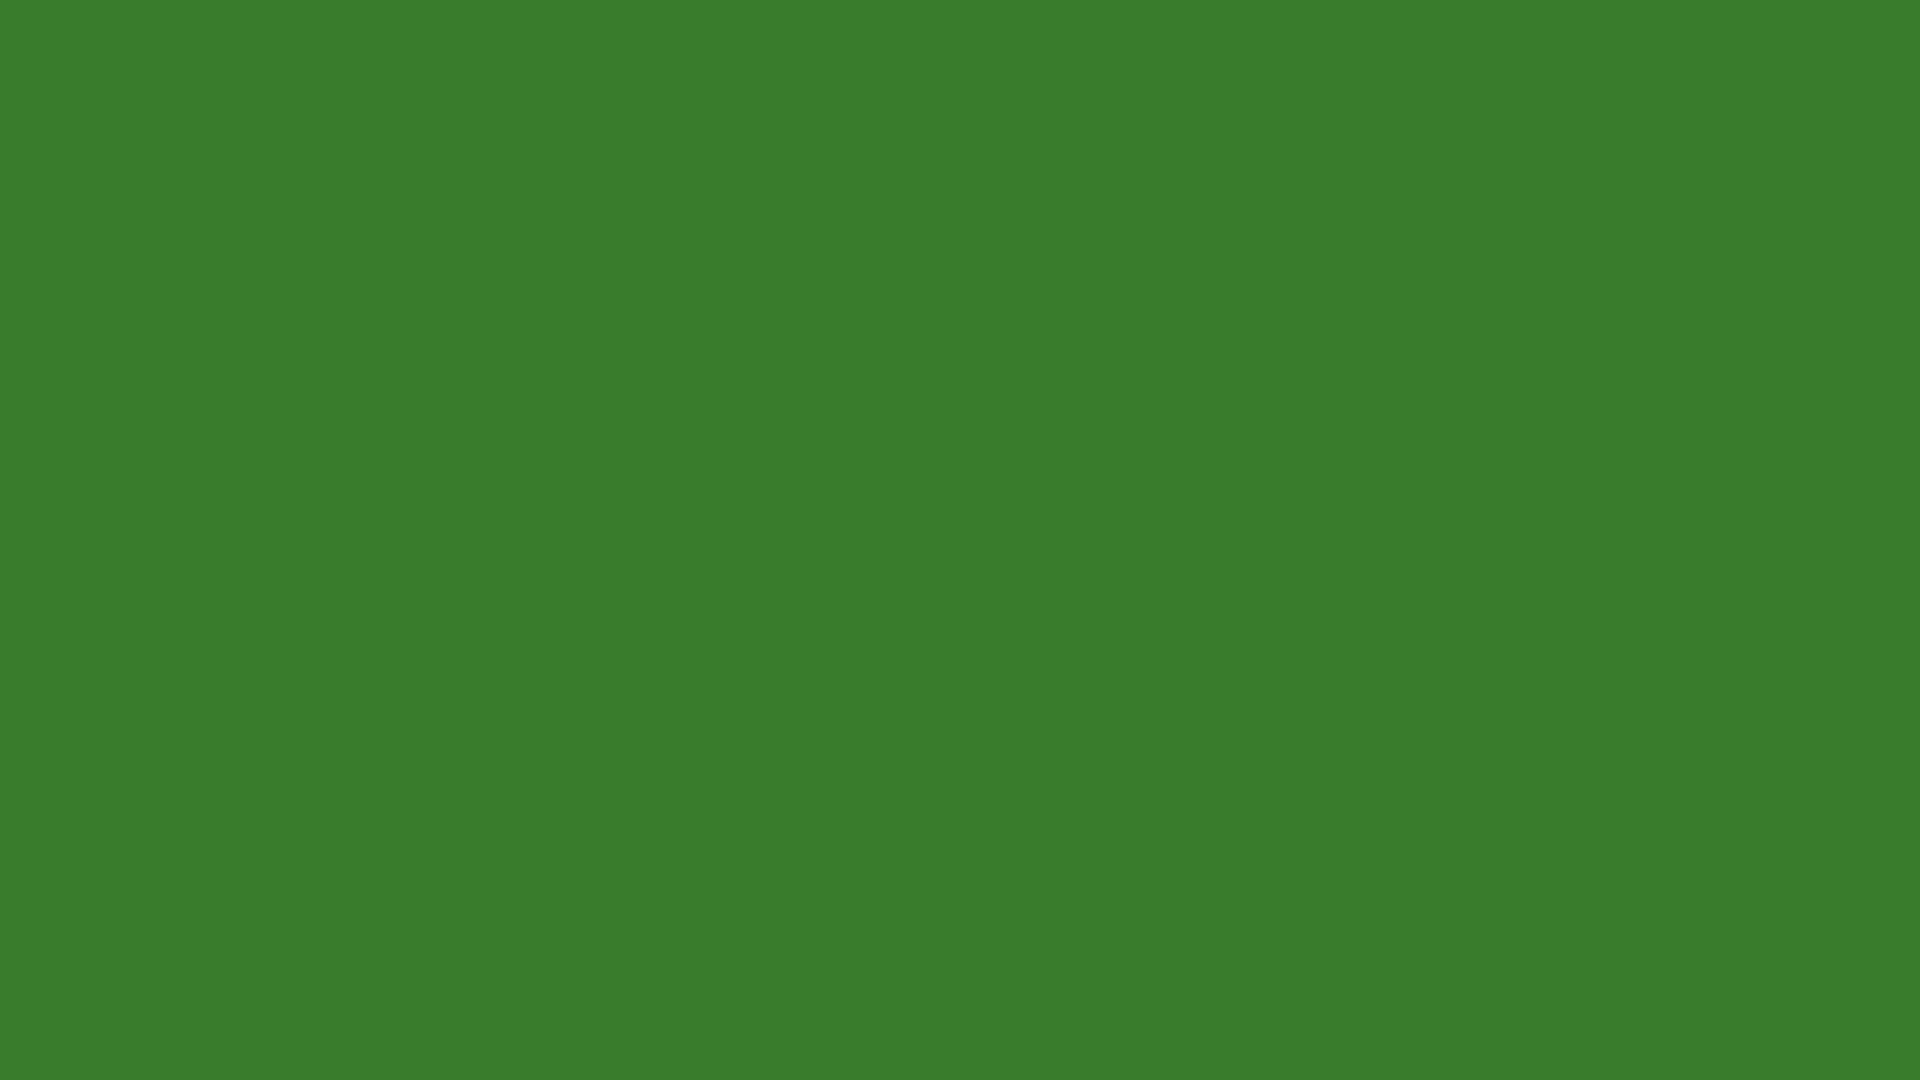 plain_vmware_green2